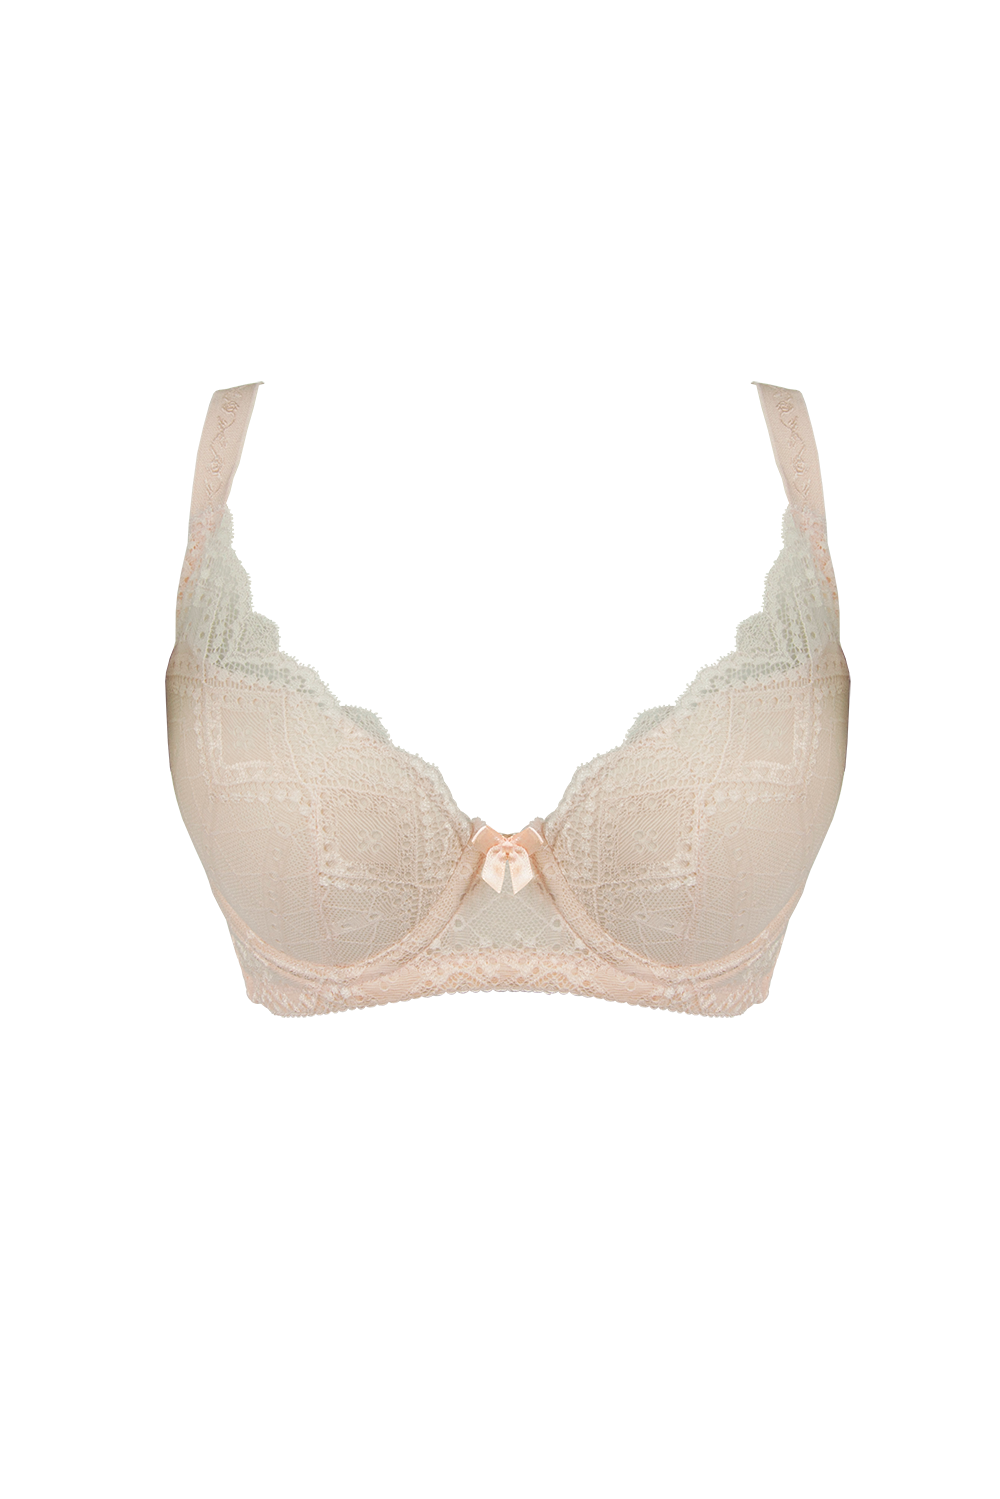 Peach Underwire Shaper Bra - Push Up Bra 18018